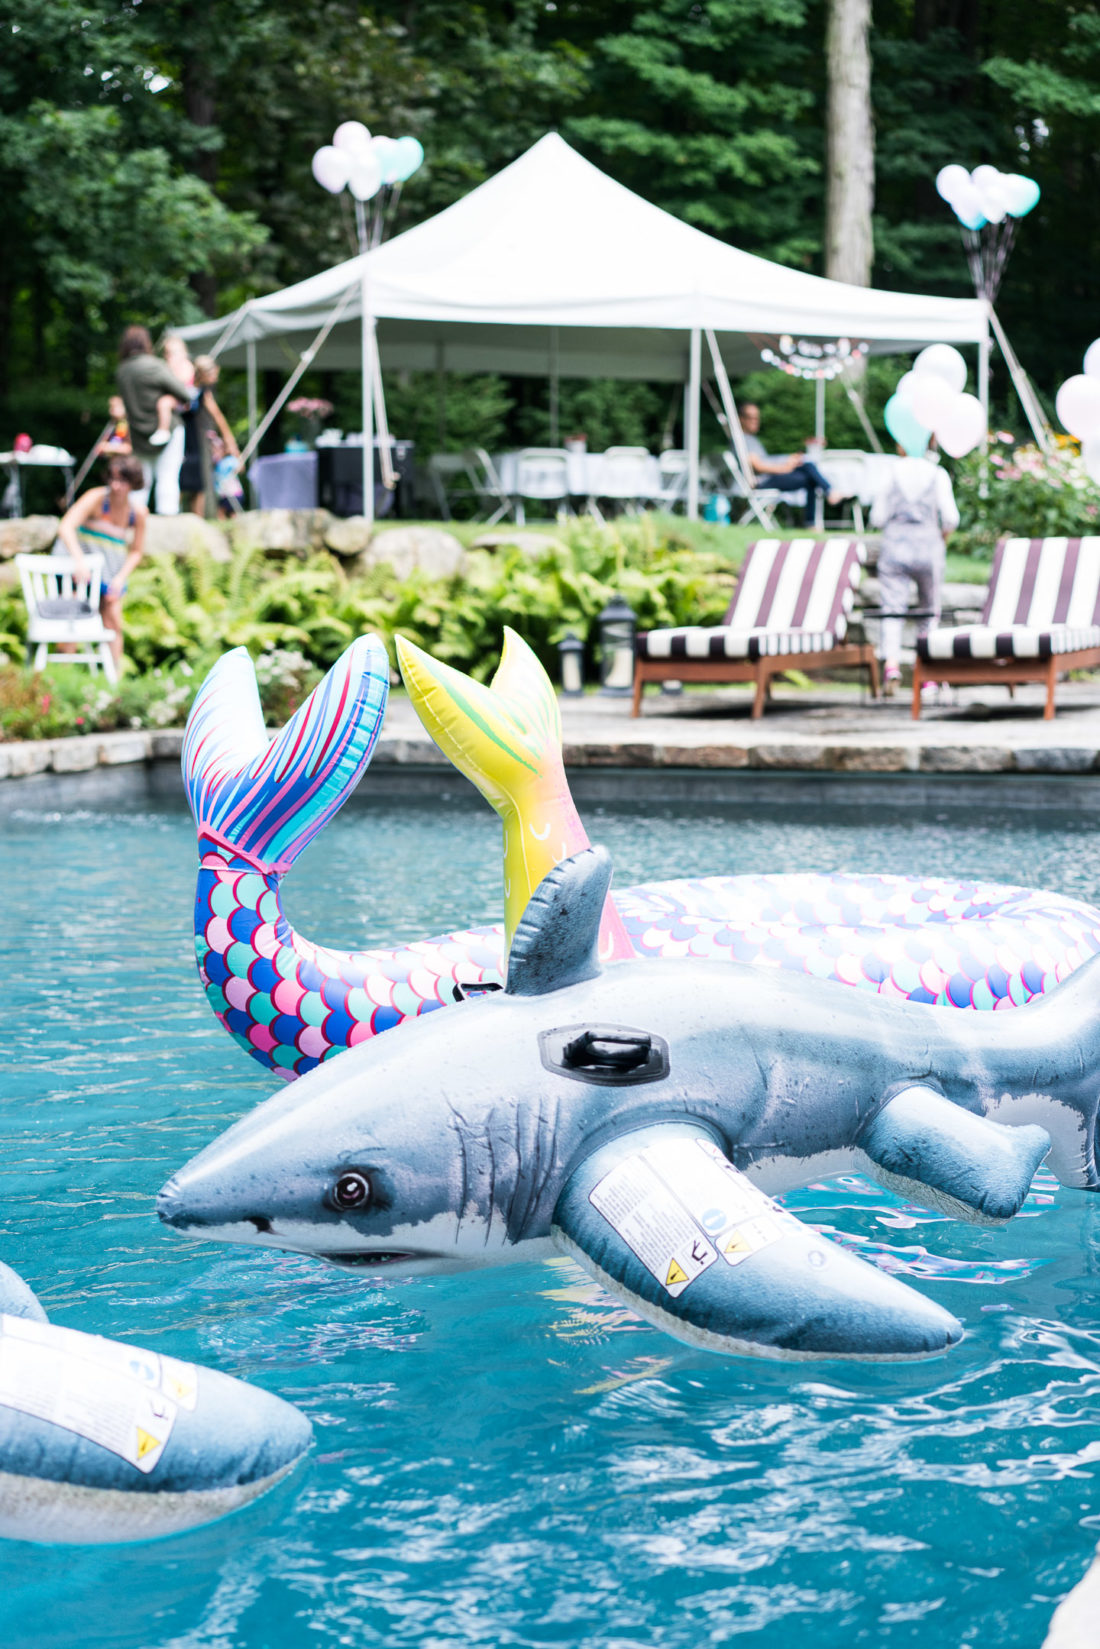 Mermaid and shark floats fill the pool at Marlowe Martino's third birthday party